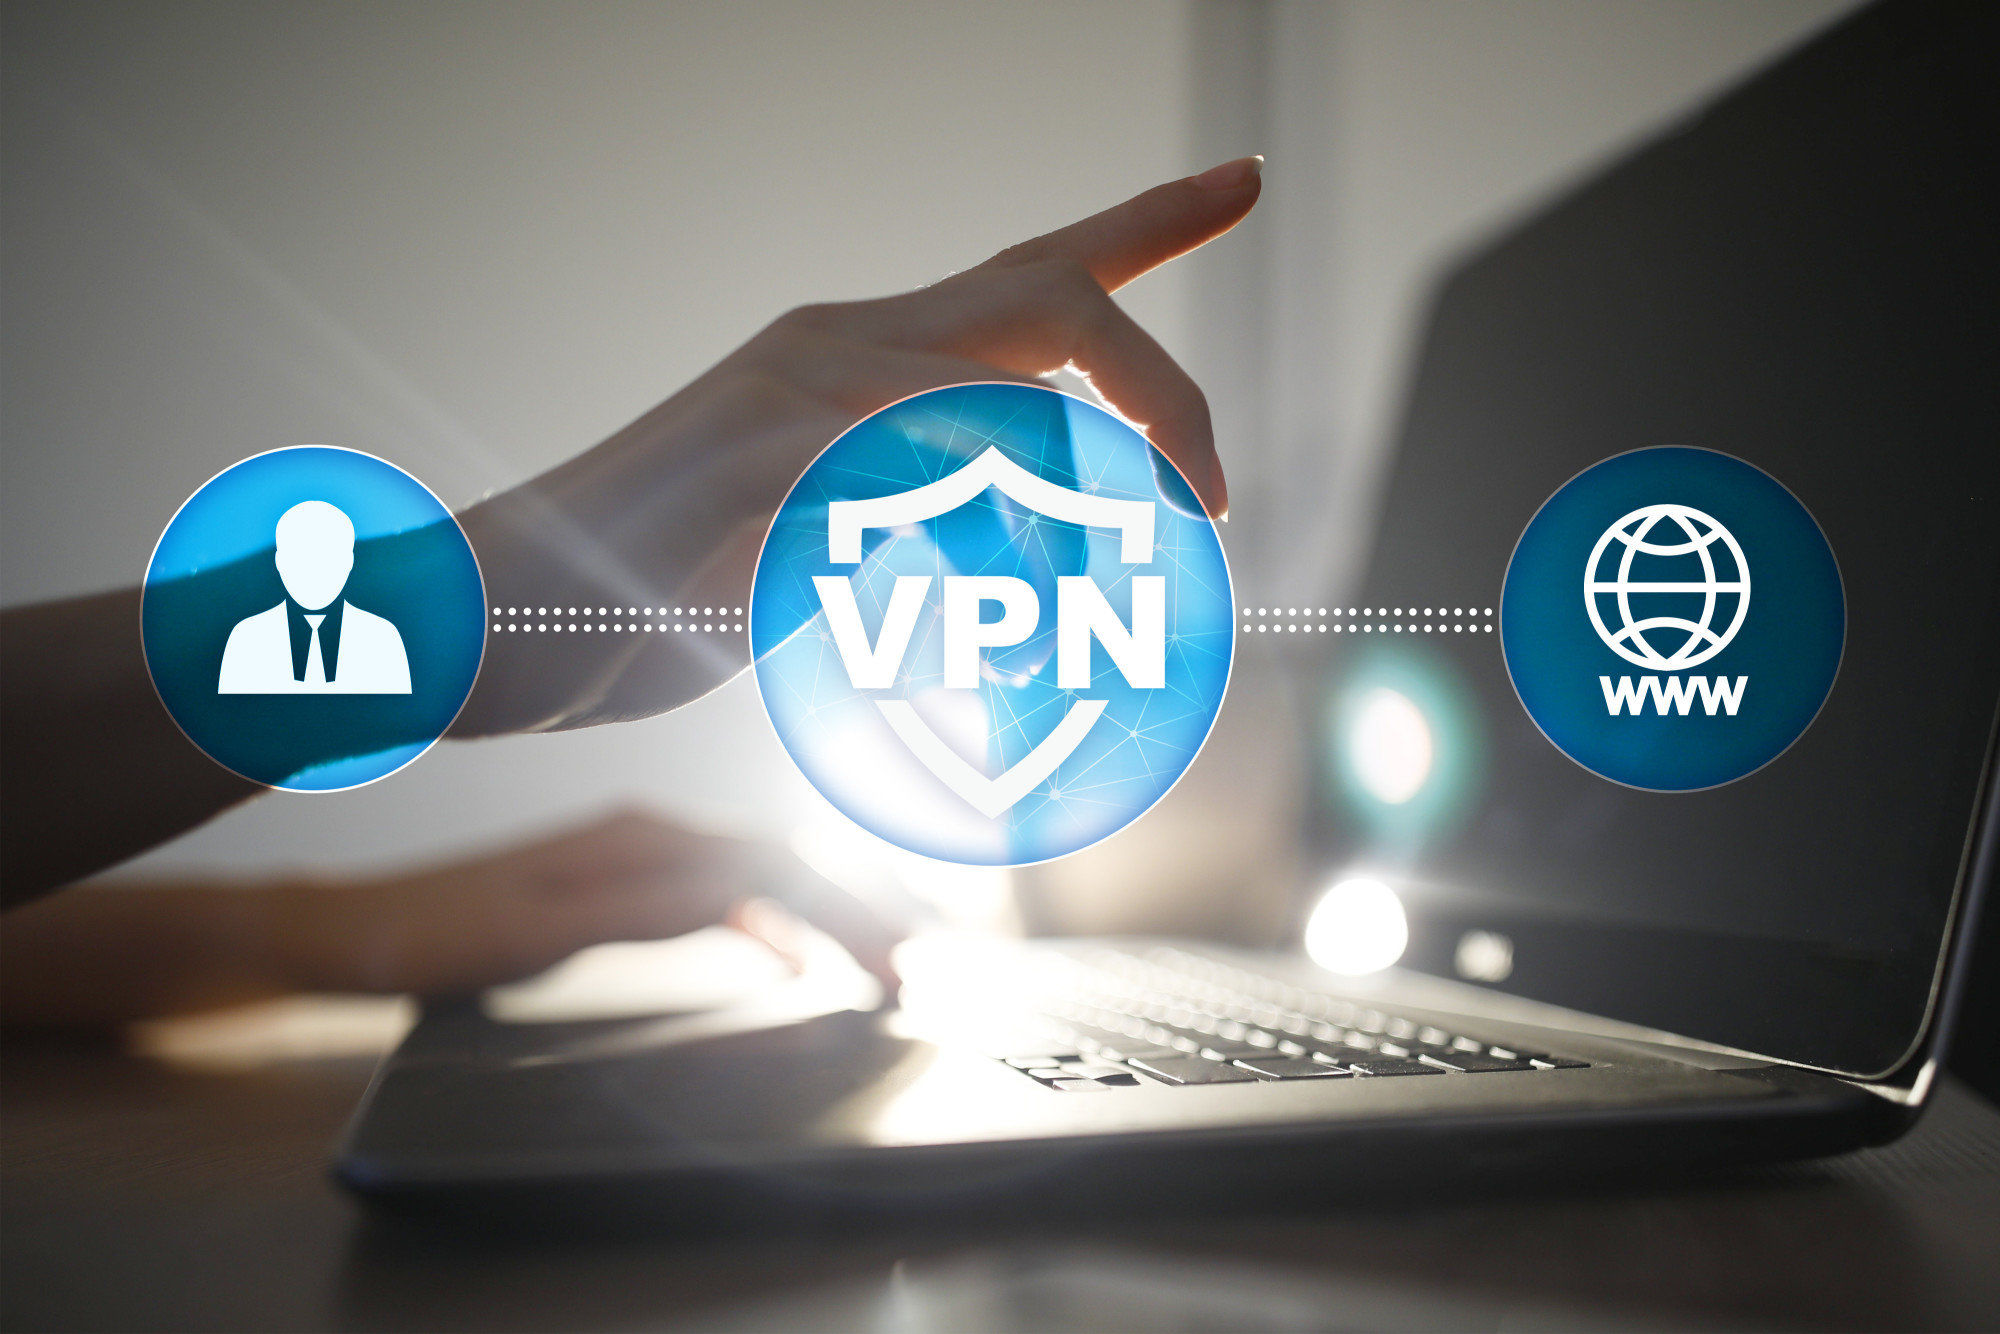 How to Build Your Own VPN Service Using a VPS